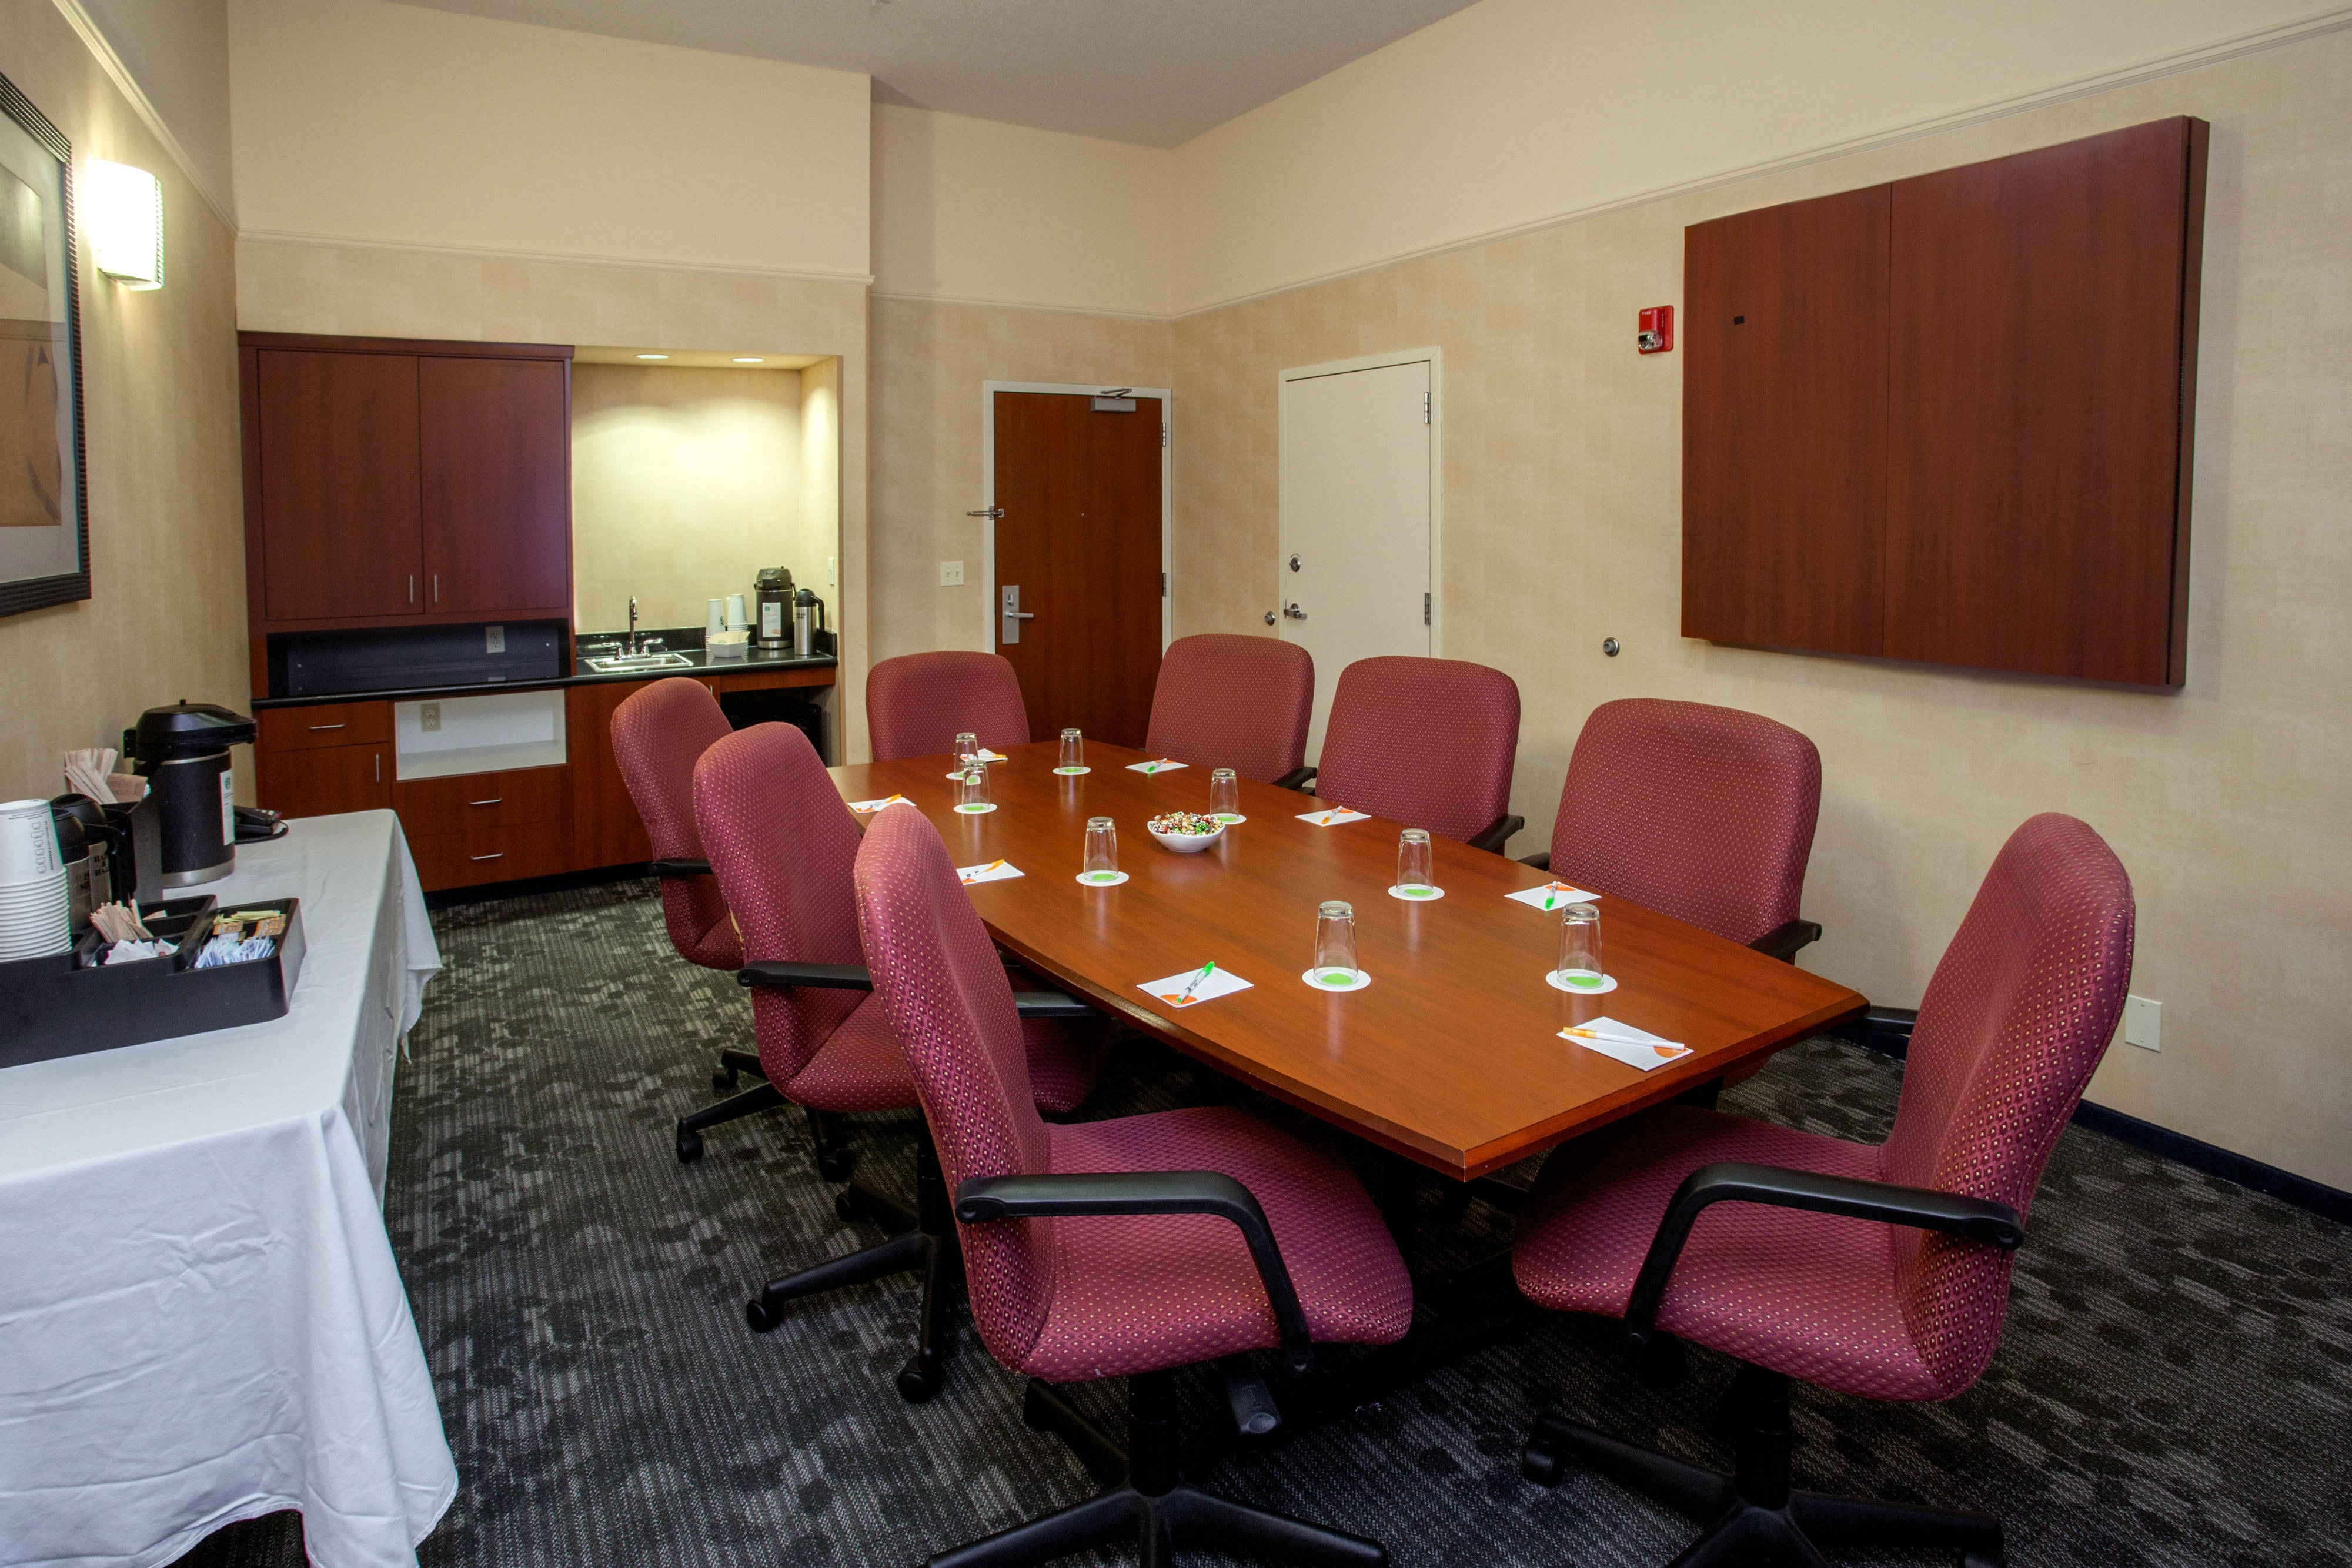 Boston Raynham Hotel Meeting Room C